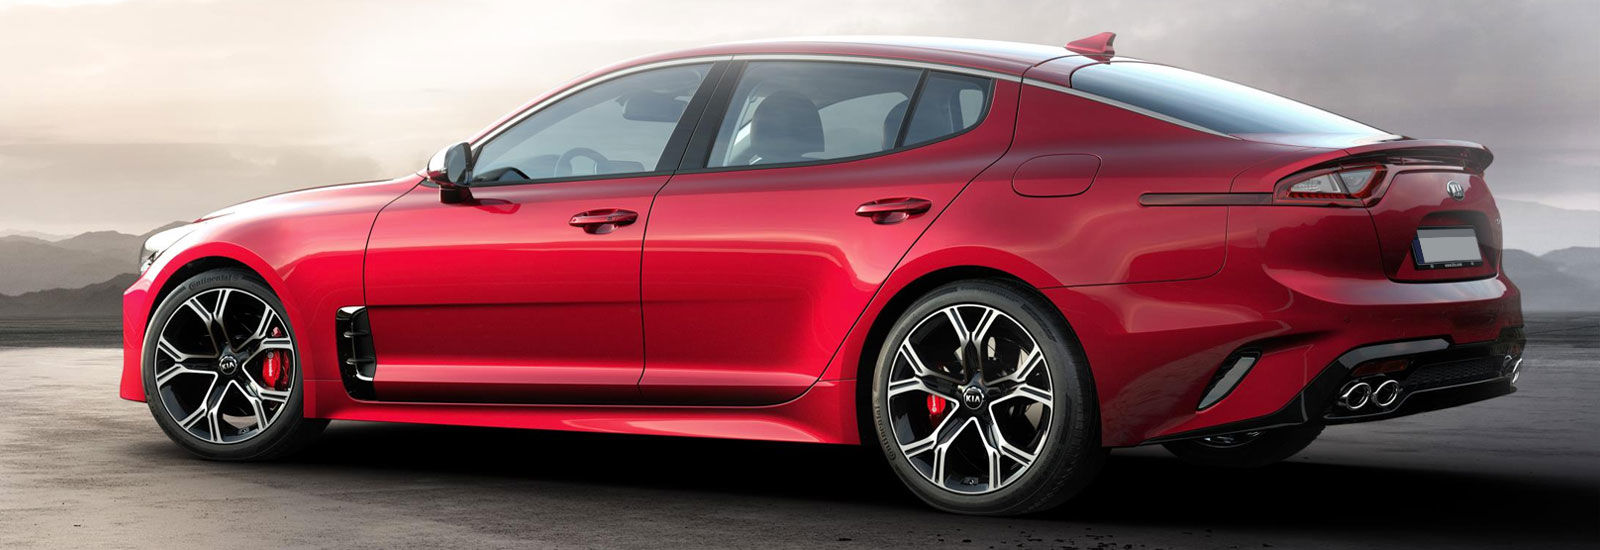 2018 Kia Stinger Gt Price Specs And Release Date Carwow